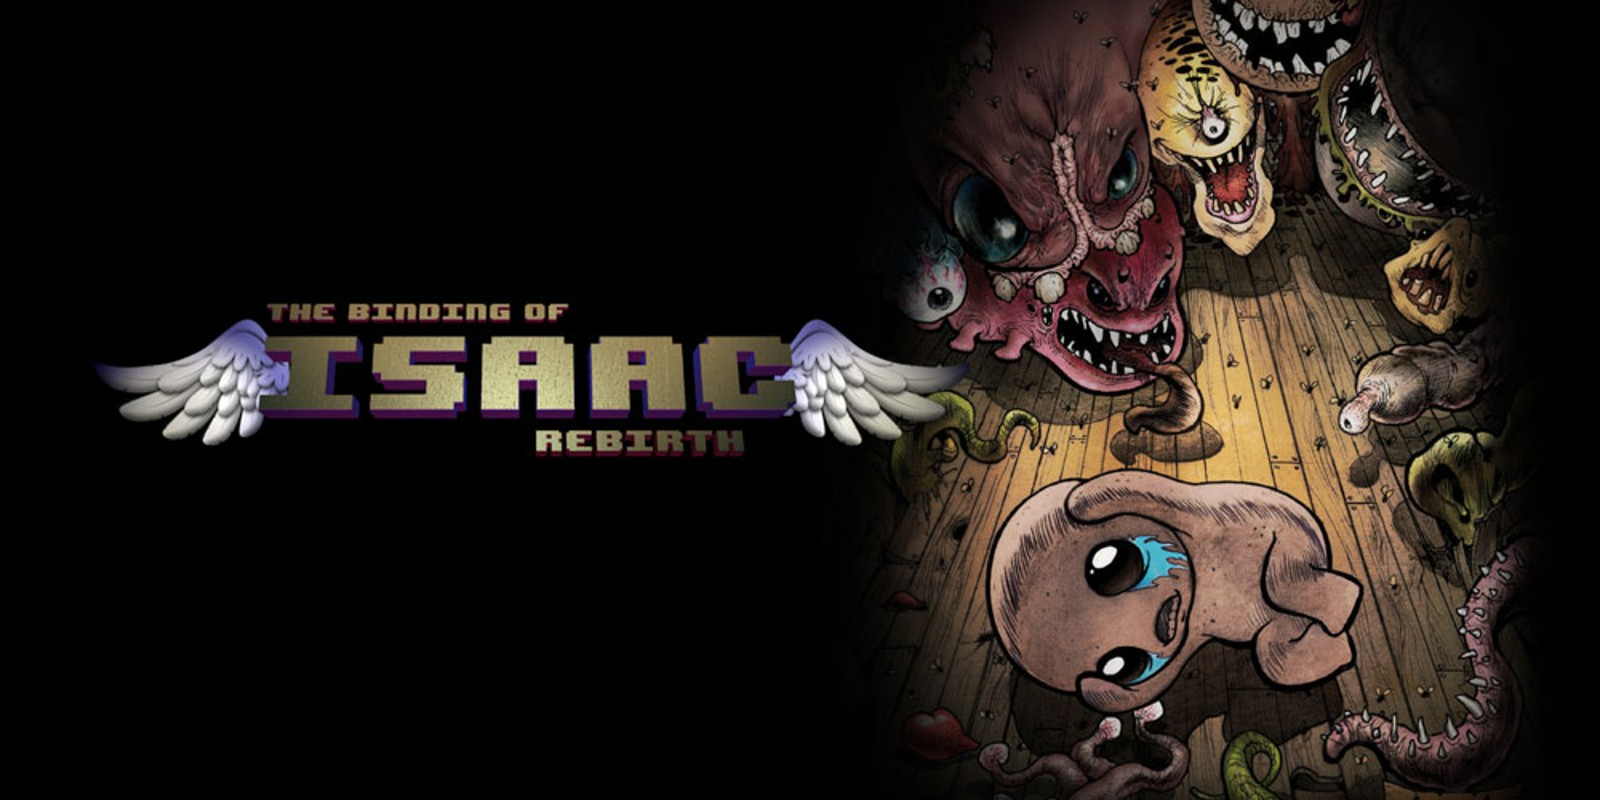 Kids Animal Wallpaper The Binding Of Isaac Rebirth Wii U Download Software